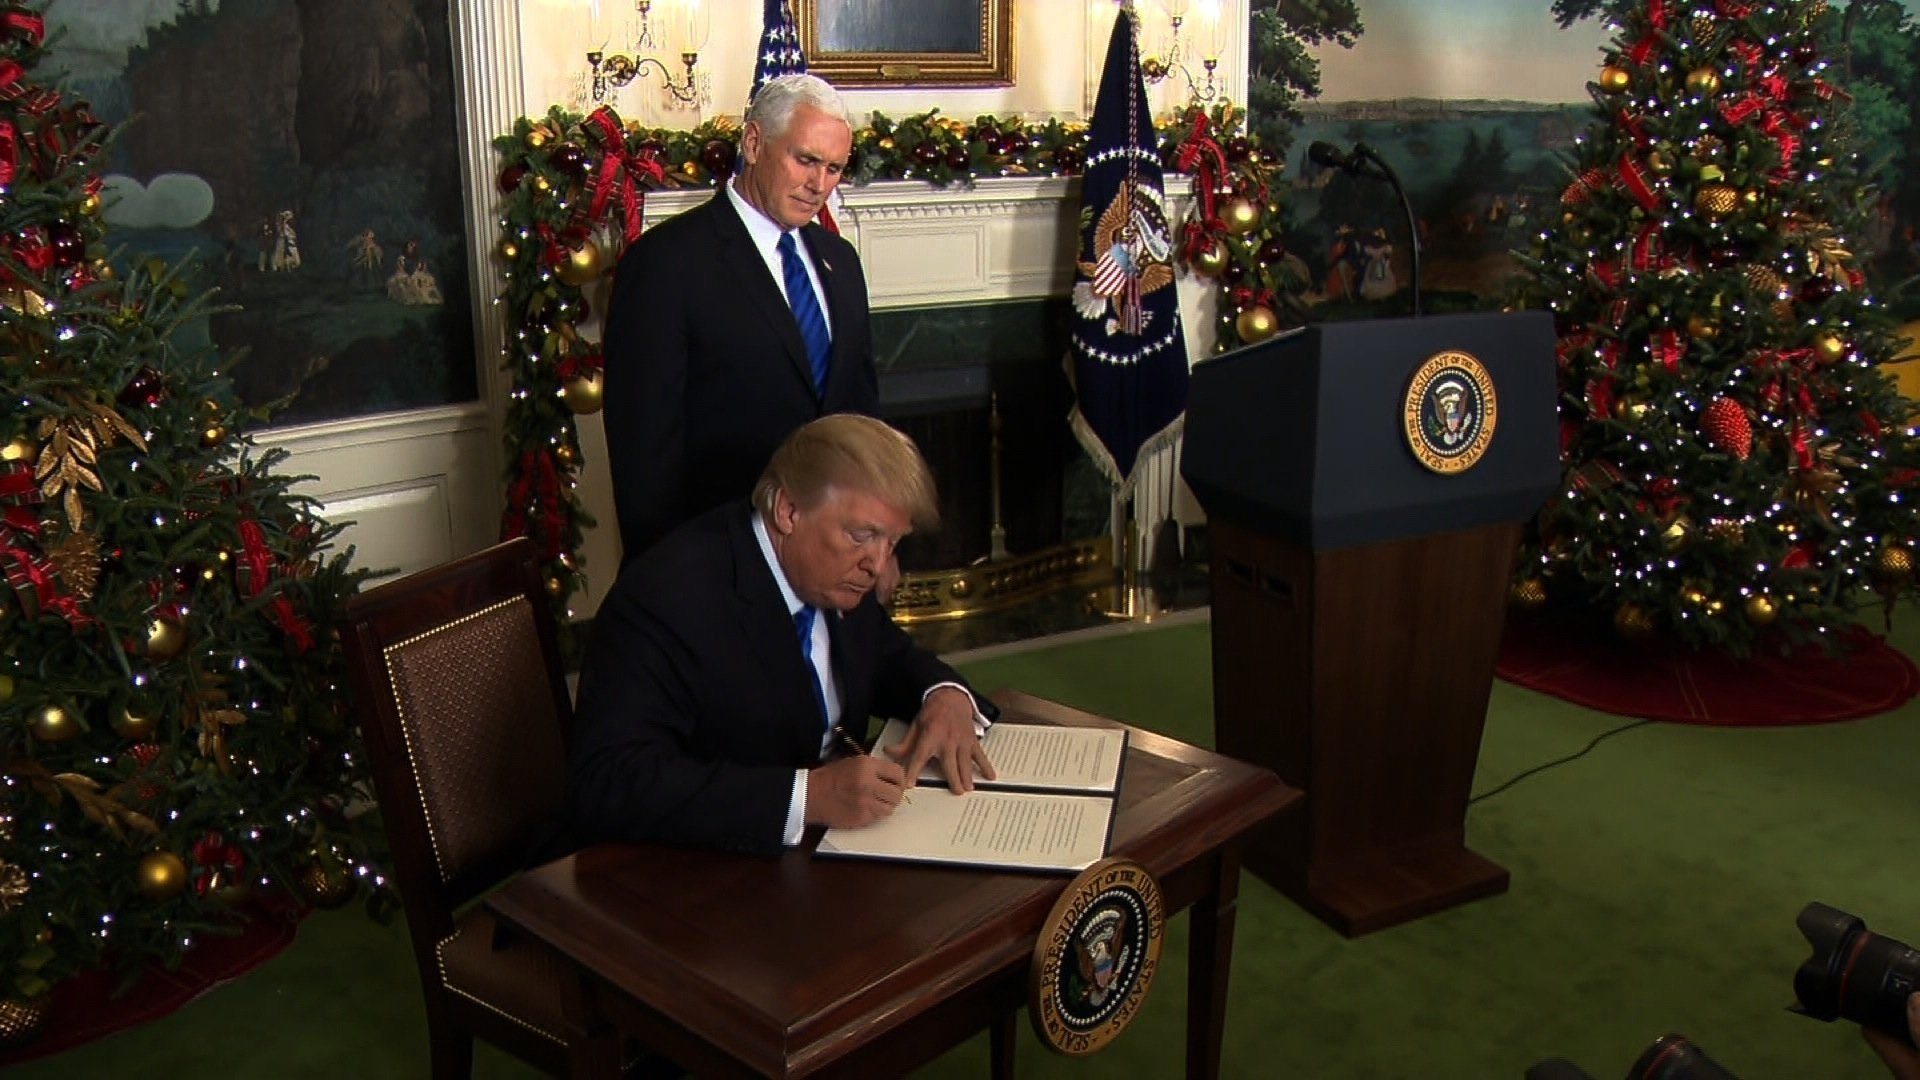 President Donald Trump speaks on December 6, 2017 recognizing Jerusalem as Israel's capital and announcing plans to relocate the US embassy there, a move that is expected to inflame tensions in the region and unsettle the prospects for peace.